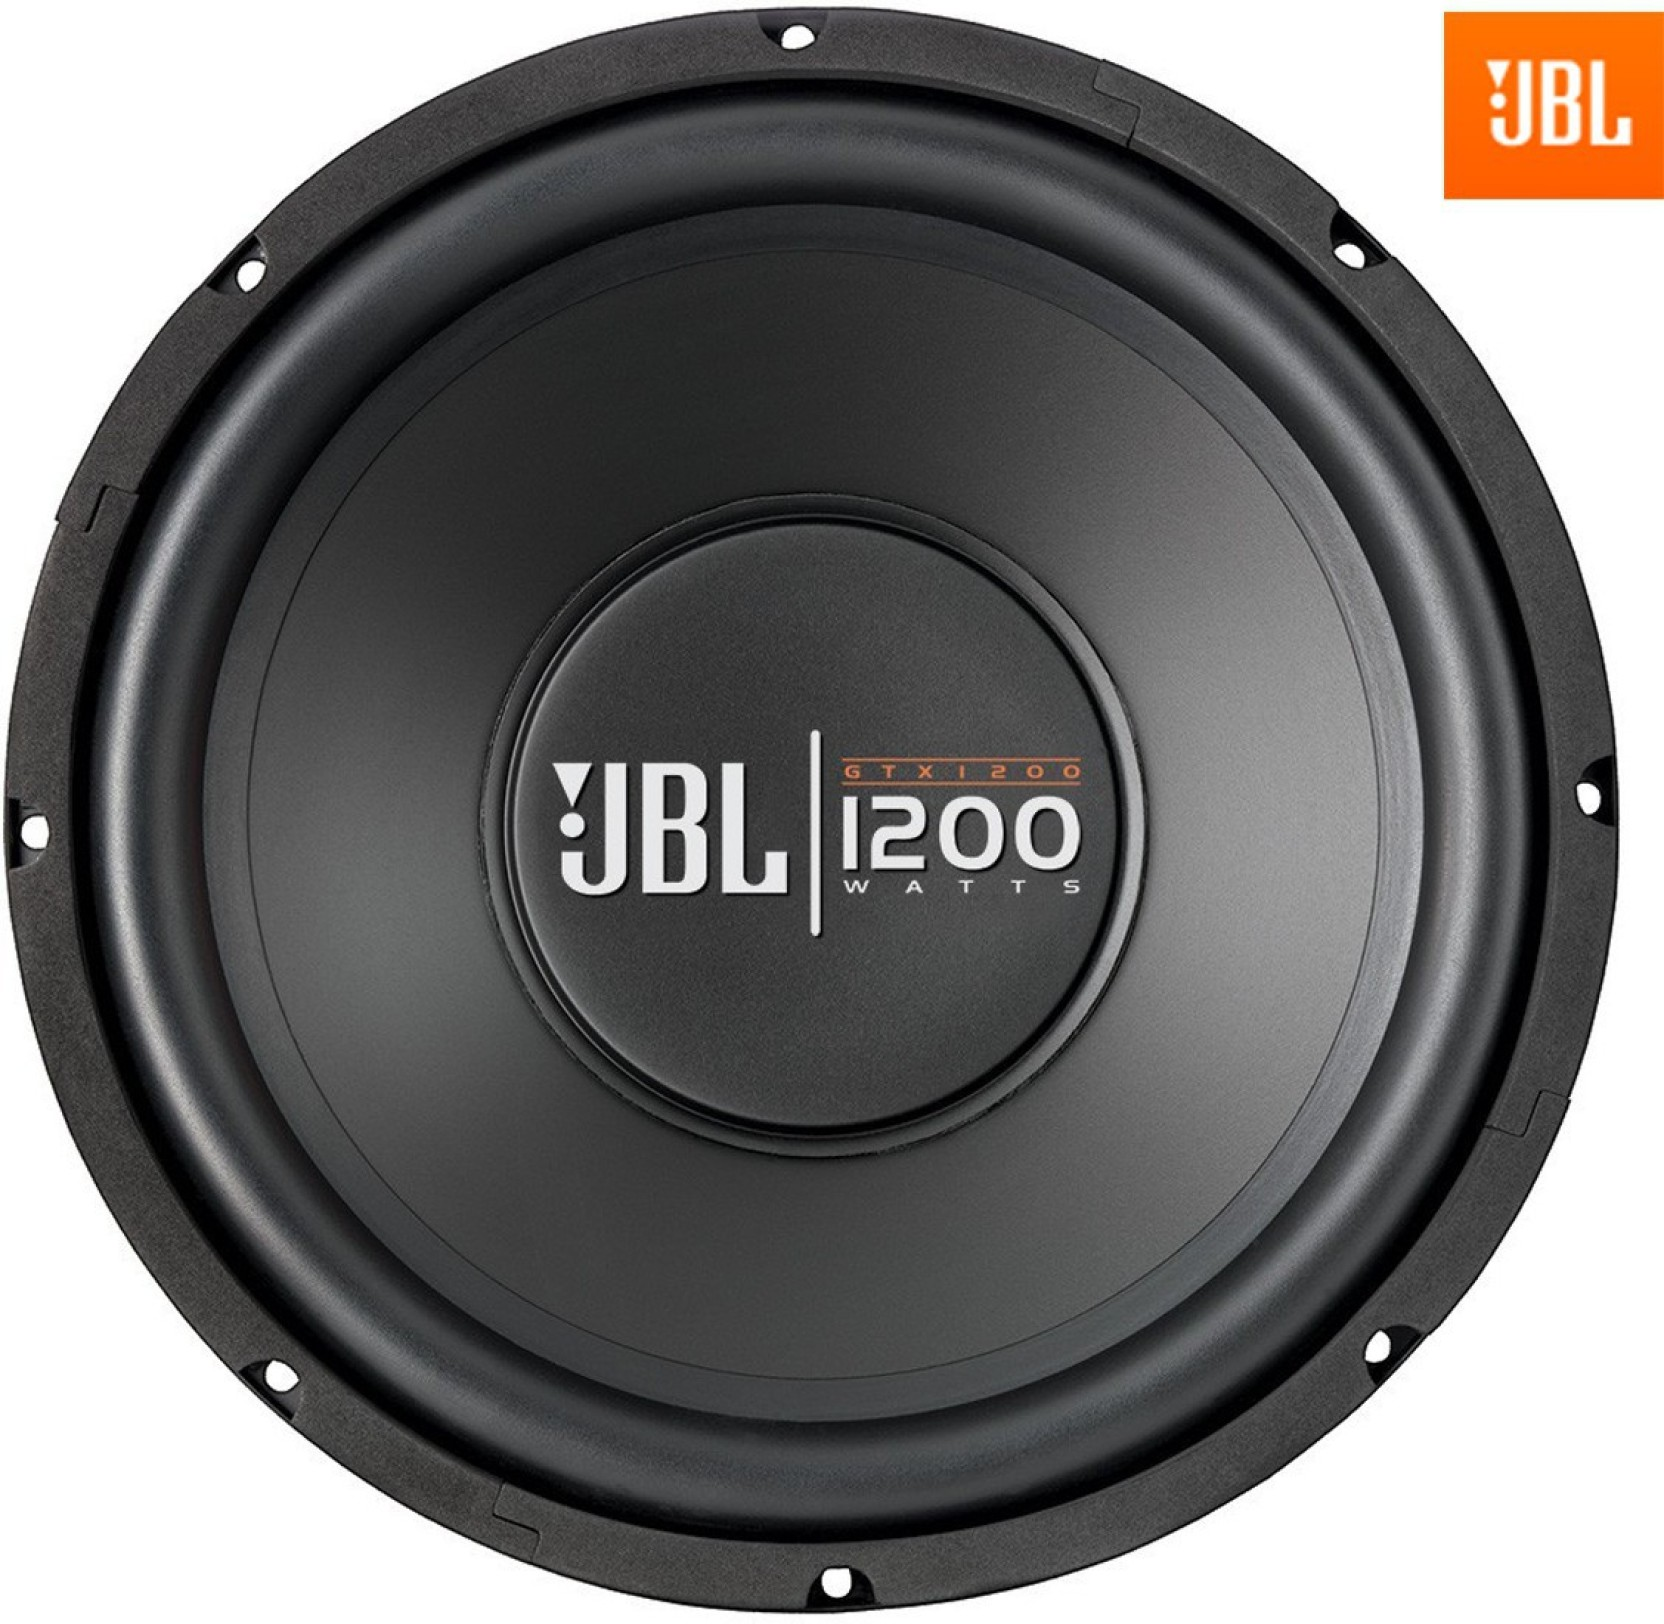 Jbl Gtx1200 Electron Subwoofer Price In India Buy Electronics Gt Tv Video Home Audio Speakers Subwoofers